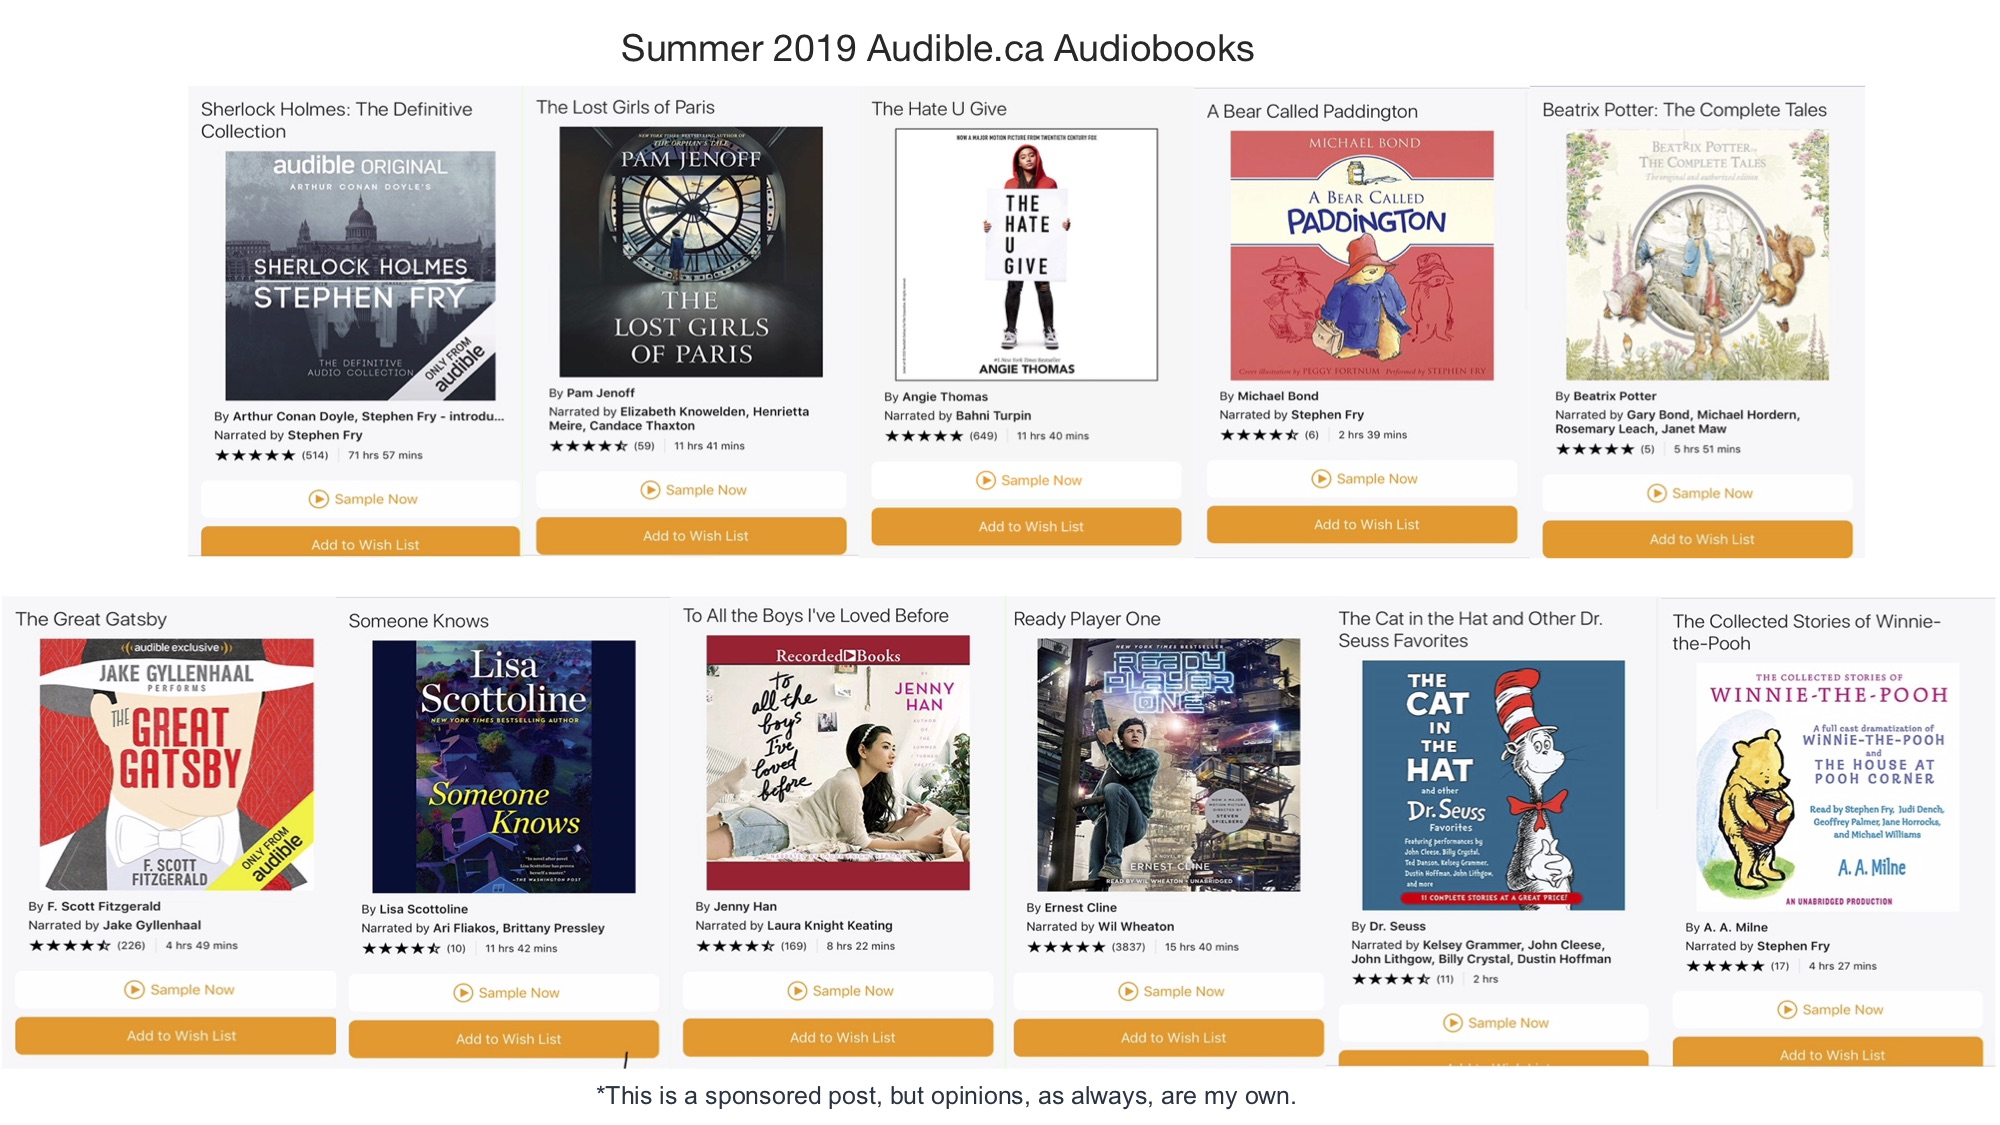 Summer 2019 Audible.ca Audiobooks